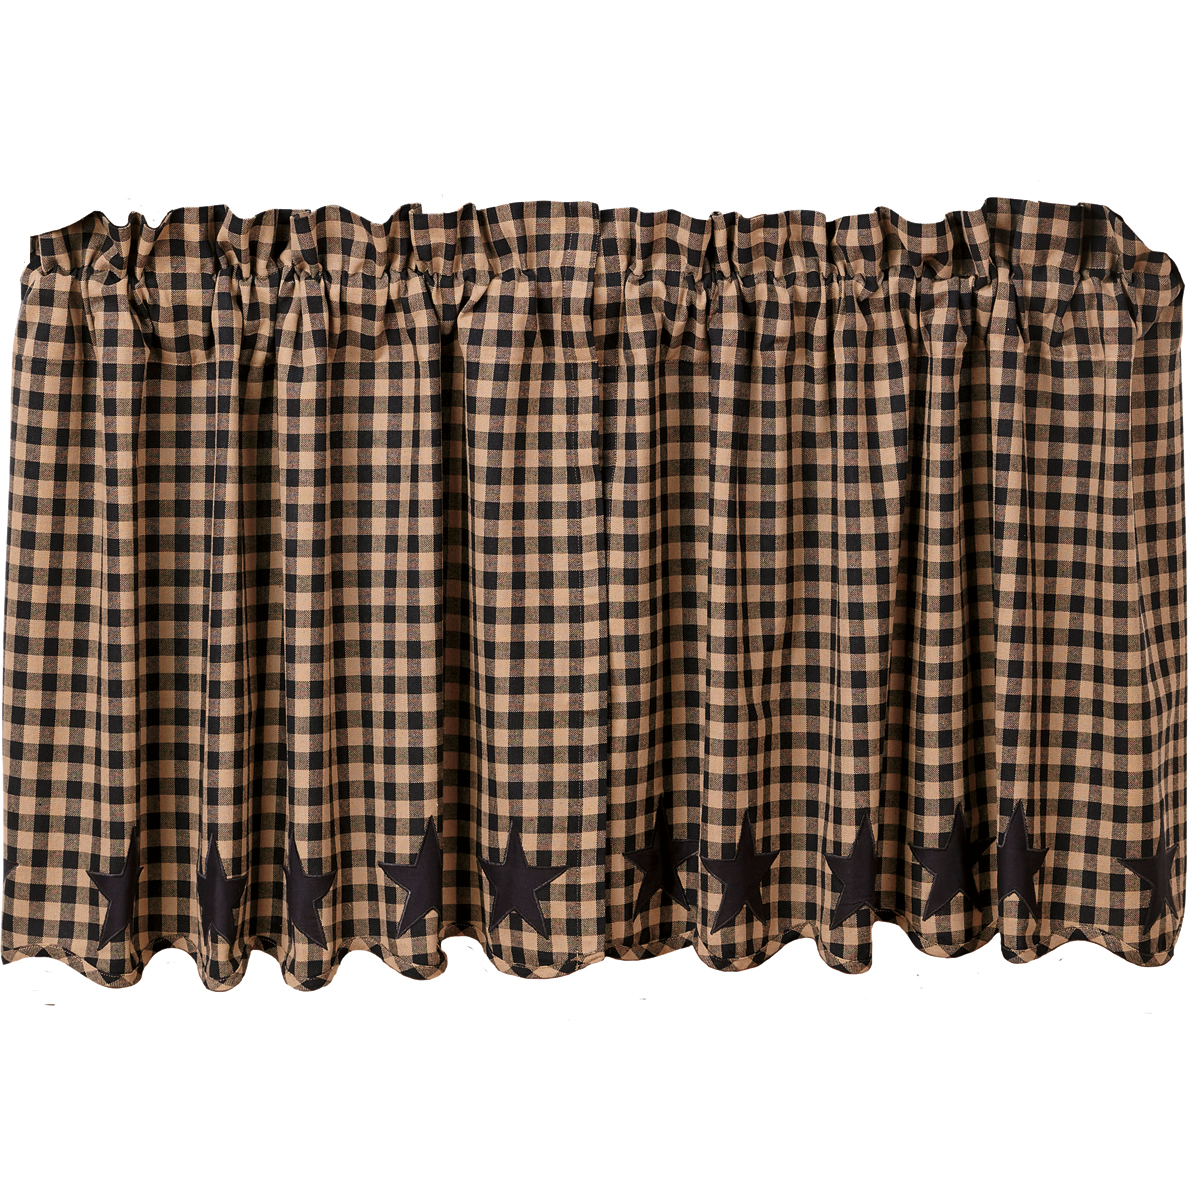 BLACK STAR Scalloped Tier - Set of 2 - 24x36 - Farmhouse Black/Tan - VHC Brands